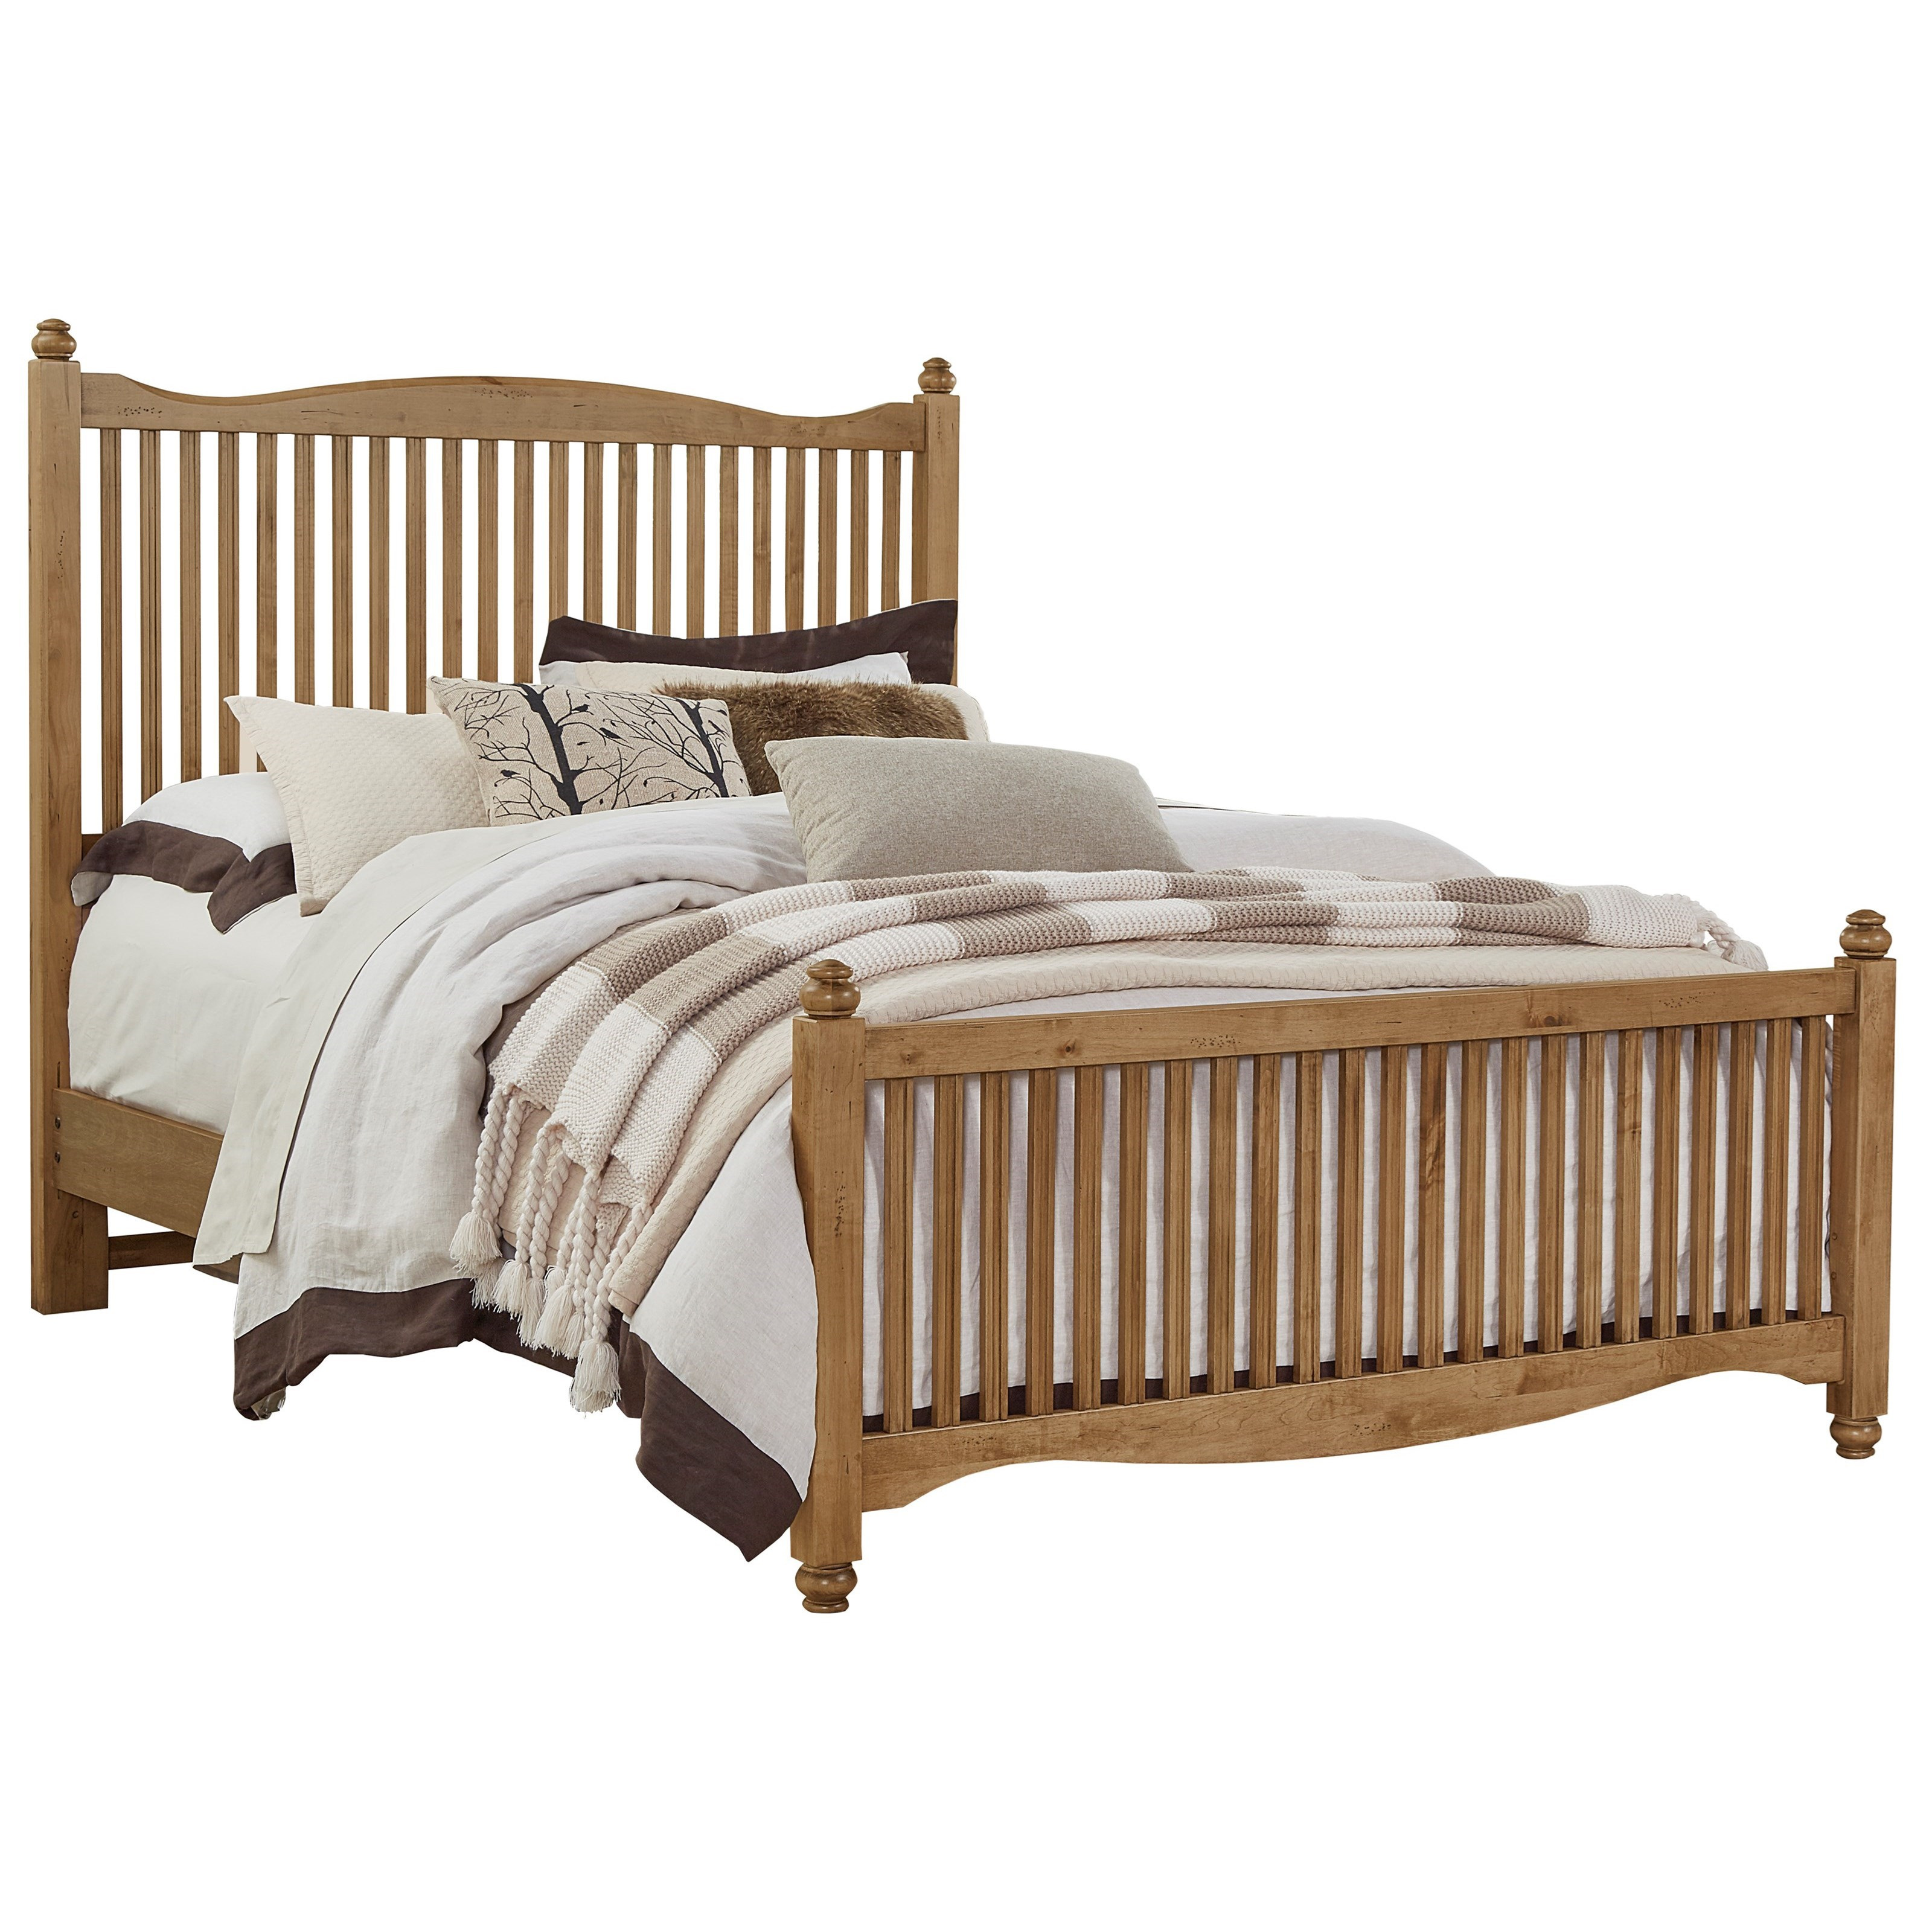 Vaughan bassett american maple solid wood twin slat bed for American furniture warehouse mattress return policy